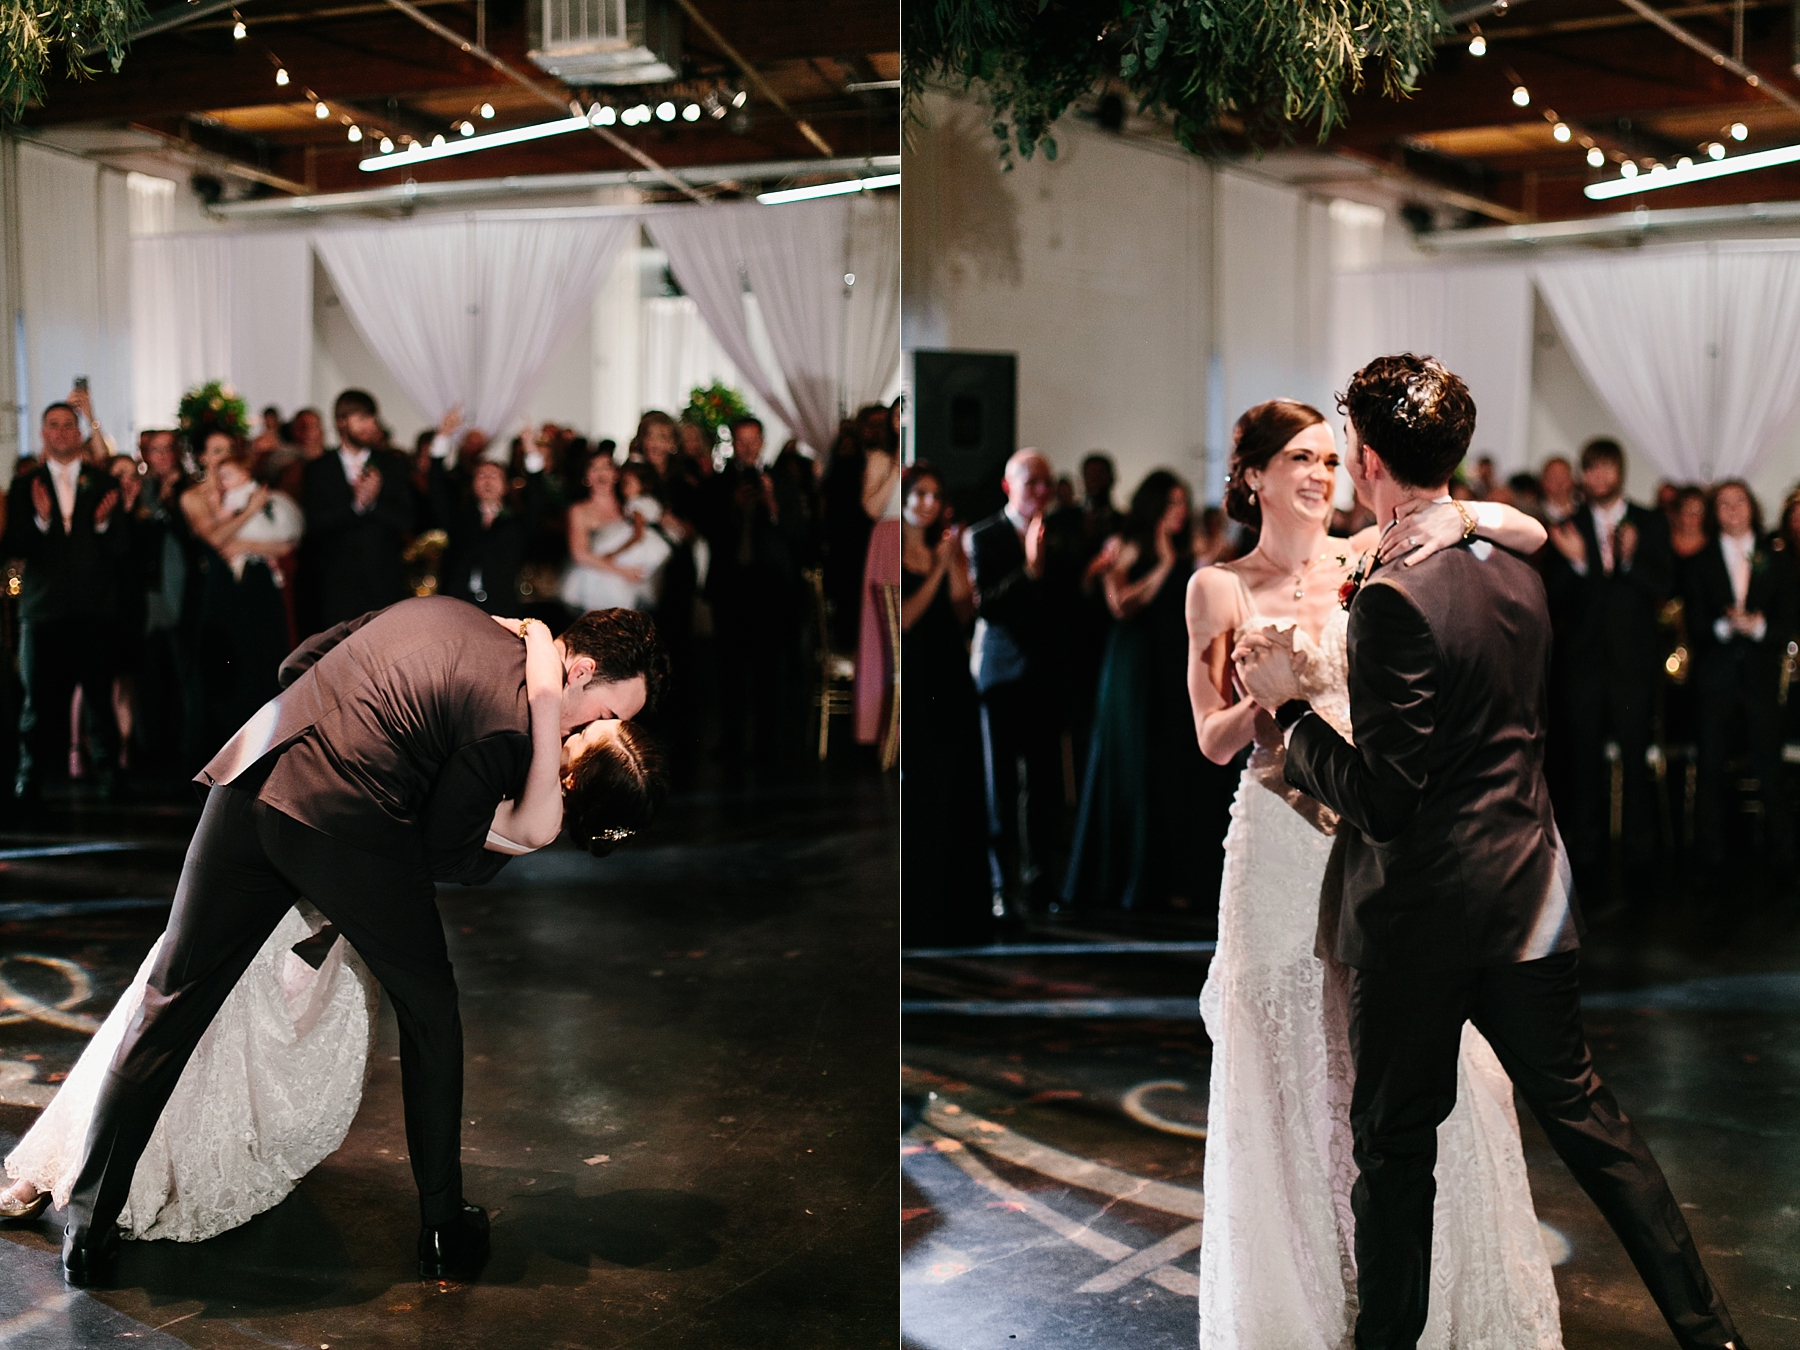 Emily + Caleb _ an elegant, intentional, industrial style wedding with navy + gold accents at 6500 in Dallas, TX by North Texas Wedding Photographer Rachel Meagan Photography _ 139